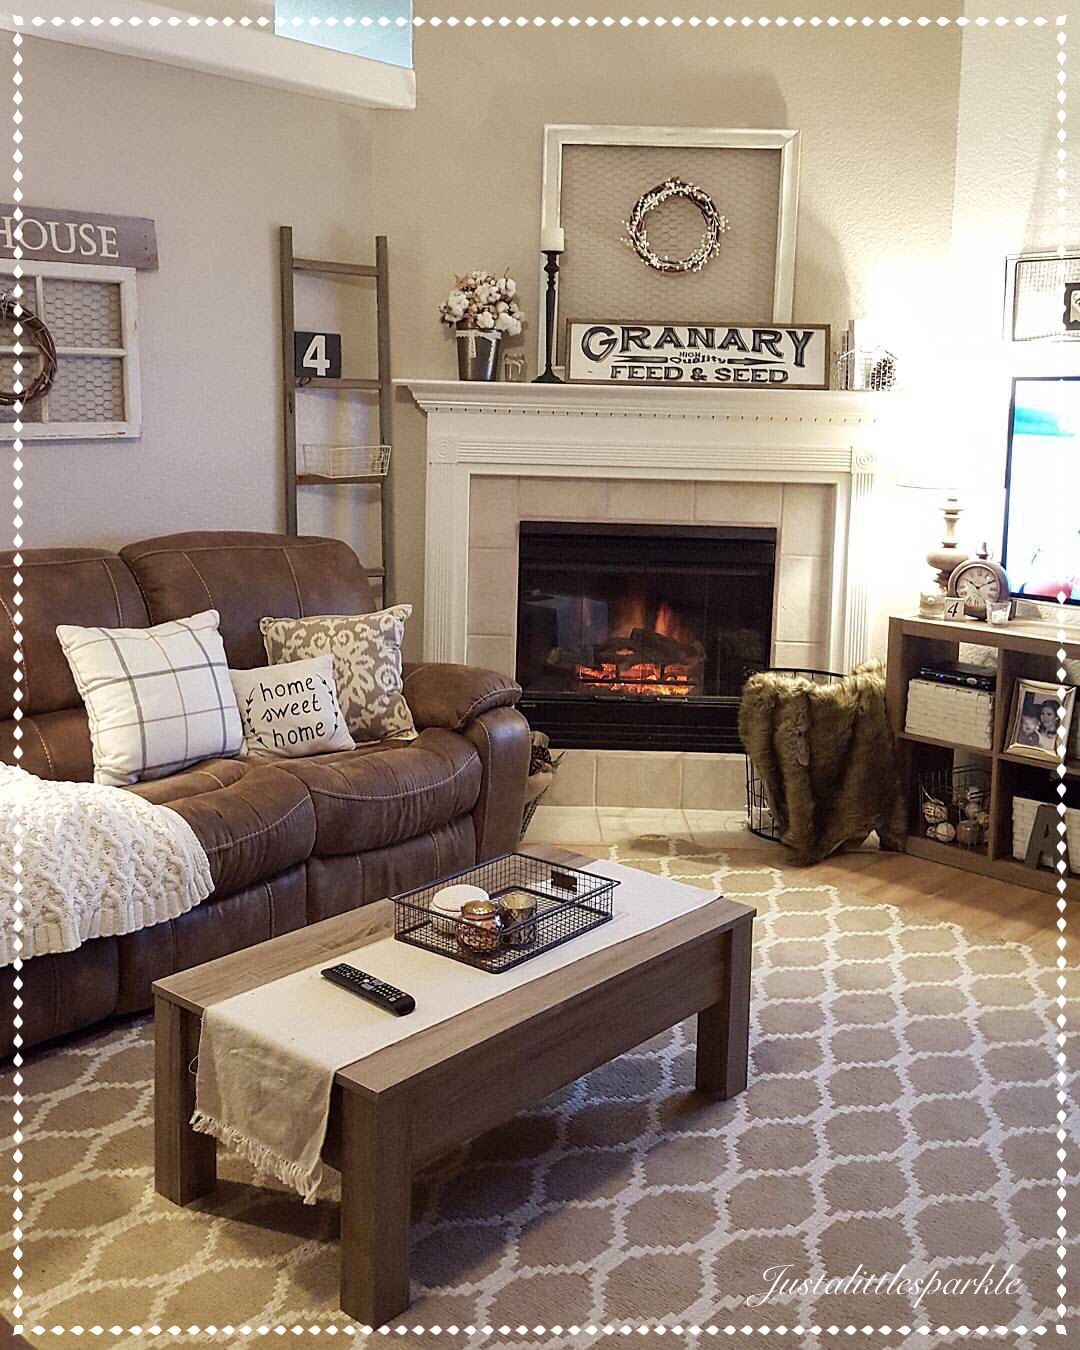 living rooms with brown couches green curtains room 4 farmhouse maintenance mistakes new owners make home see enriching thoughts and furniture formats find outline motivation from an assortment of nation including shading